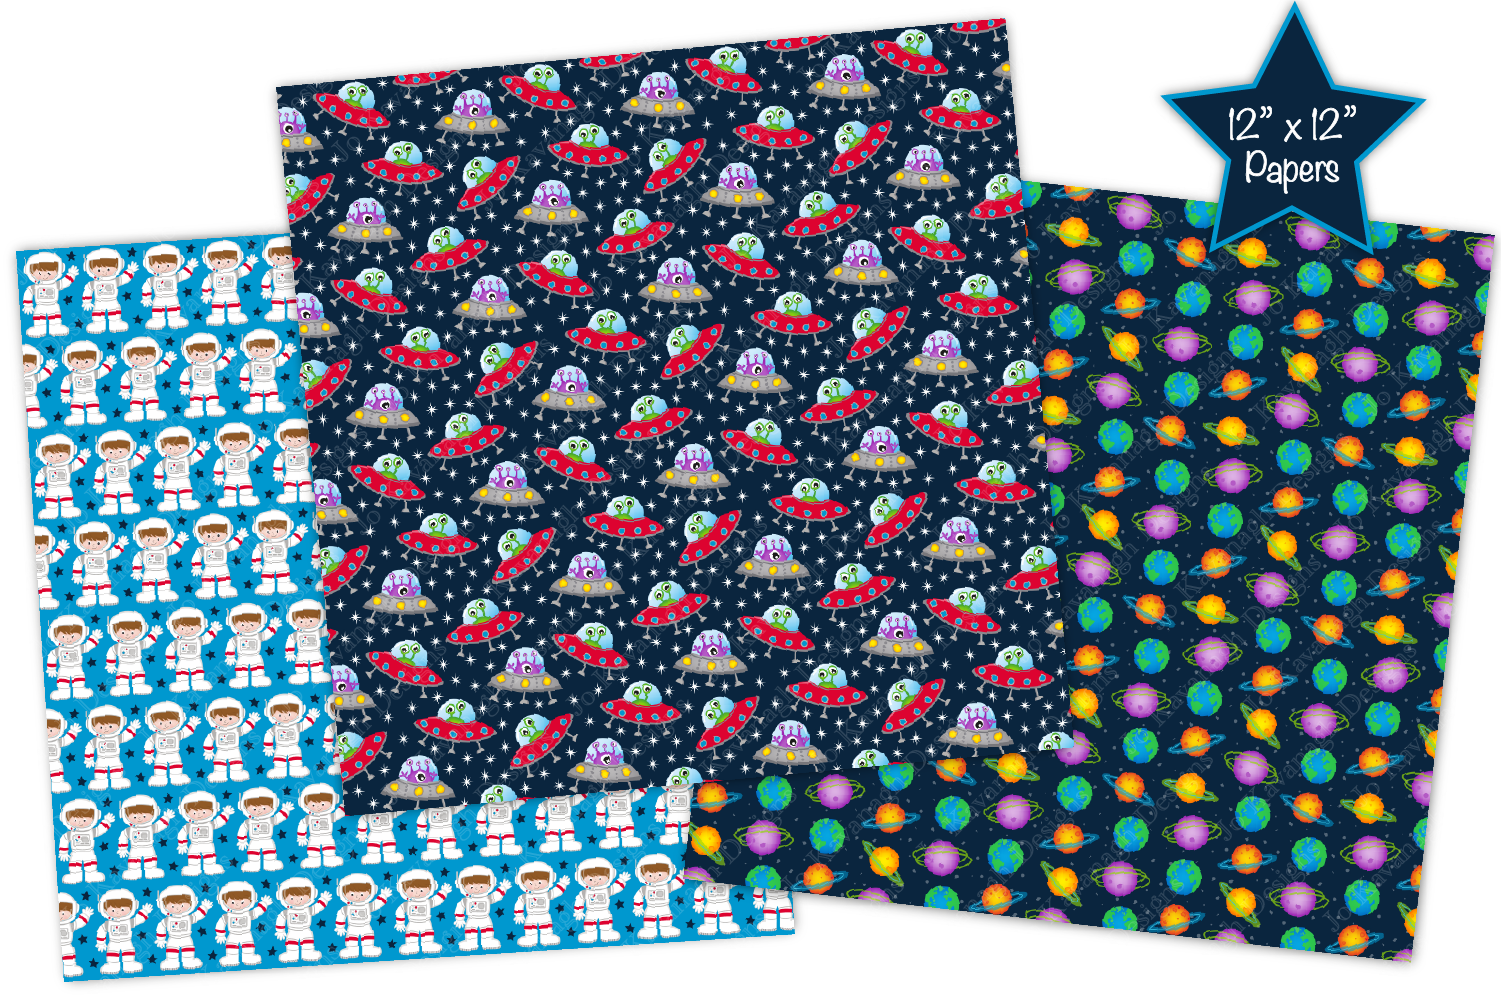 Space Digital Papers, Space Patterns, Astronauts, Planets example image 4